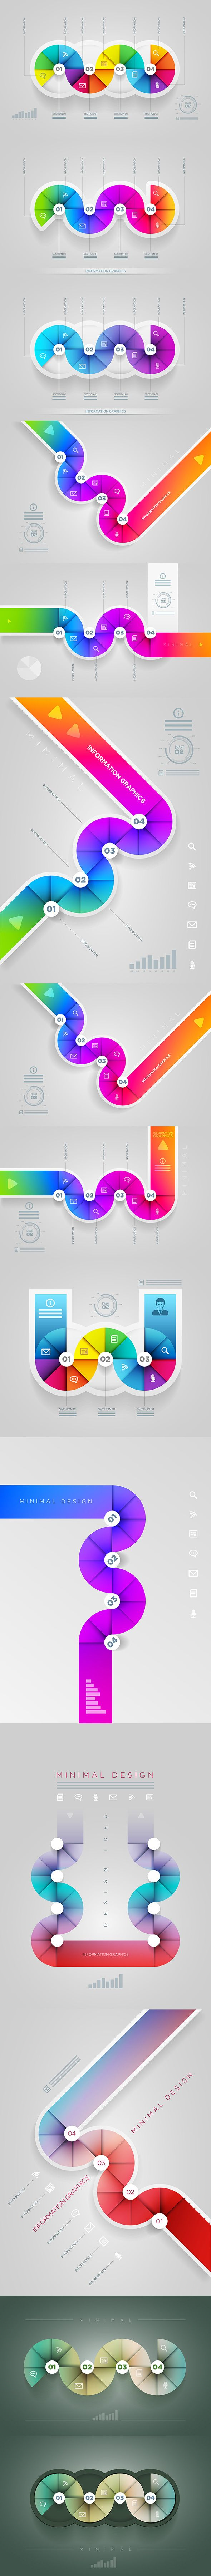 Colorful infographics.